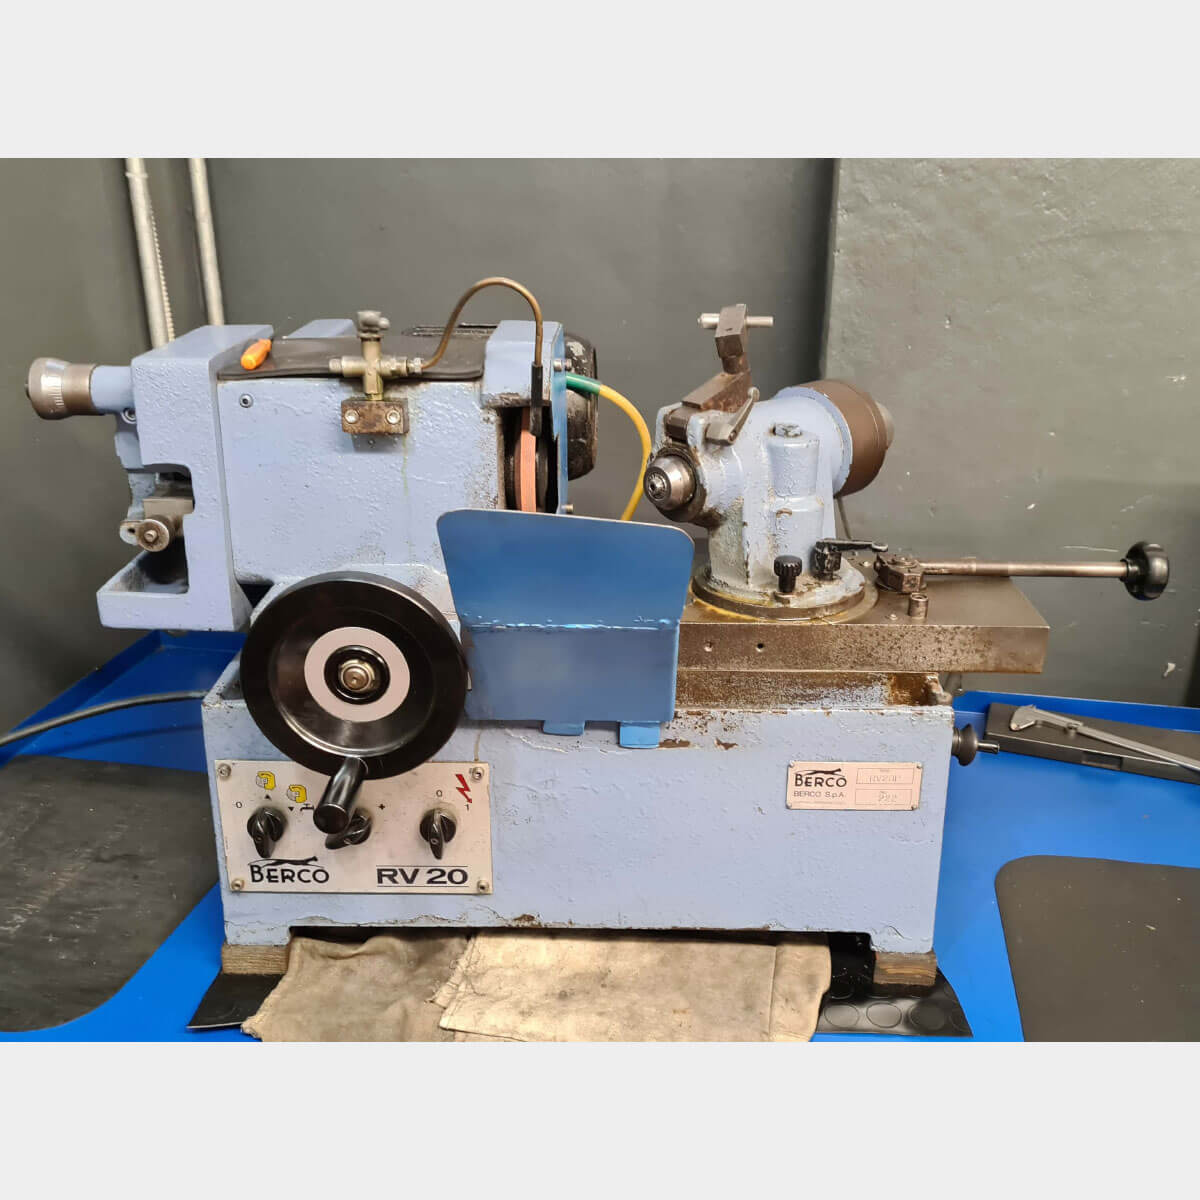 MU724 - BERCO RV20 Used Valve Grinding Machine